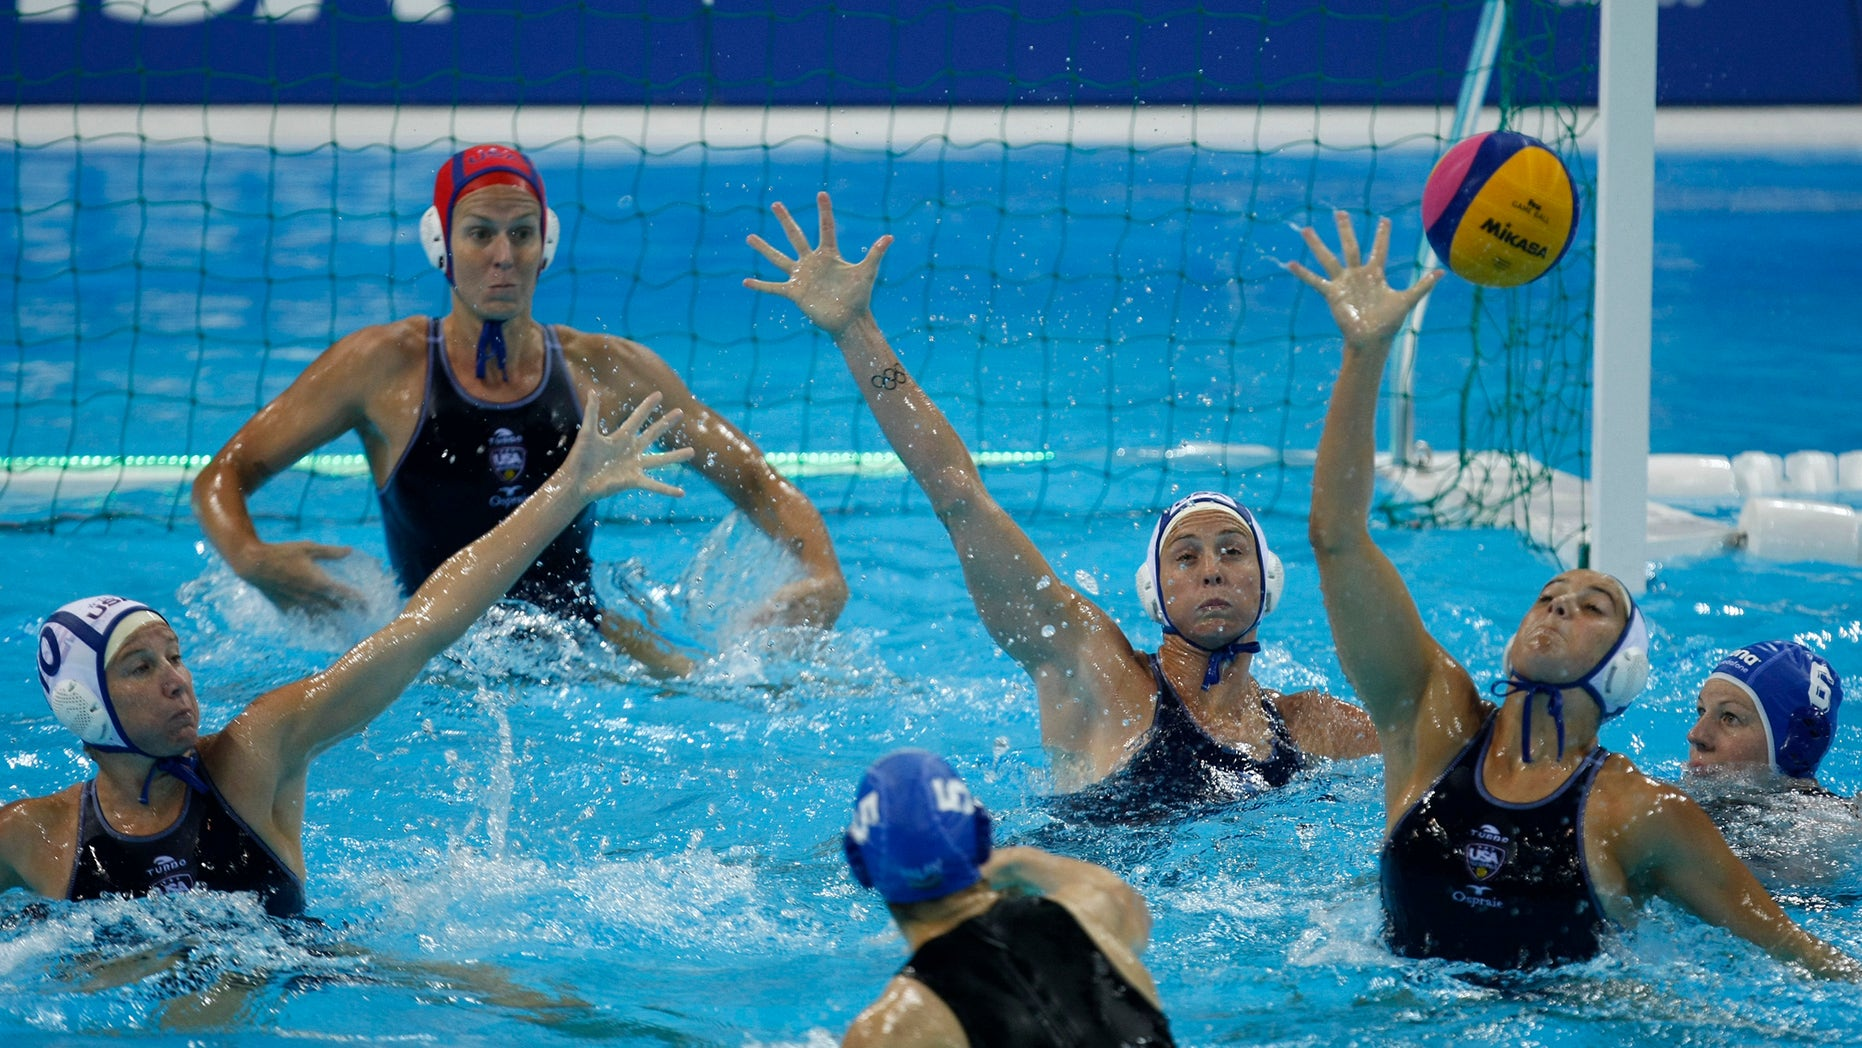 May 3, 2012: Gabriella Szucs, of Hungary, No 5, at bottom, shoots and scores a goal against the US during their international  Women's Water Polo event, preliminary round, at the London 2012 Olympic water polo pool in London.